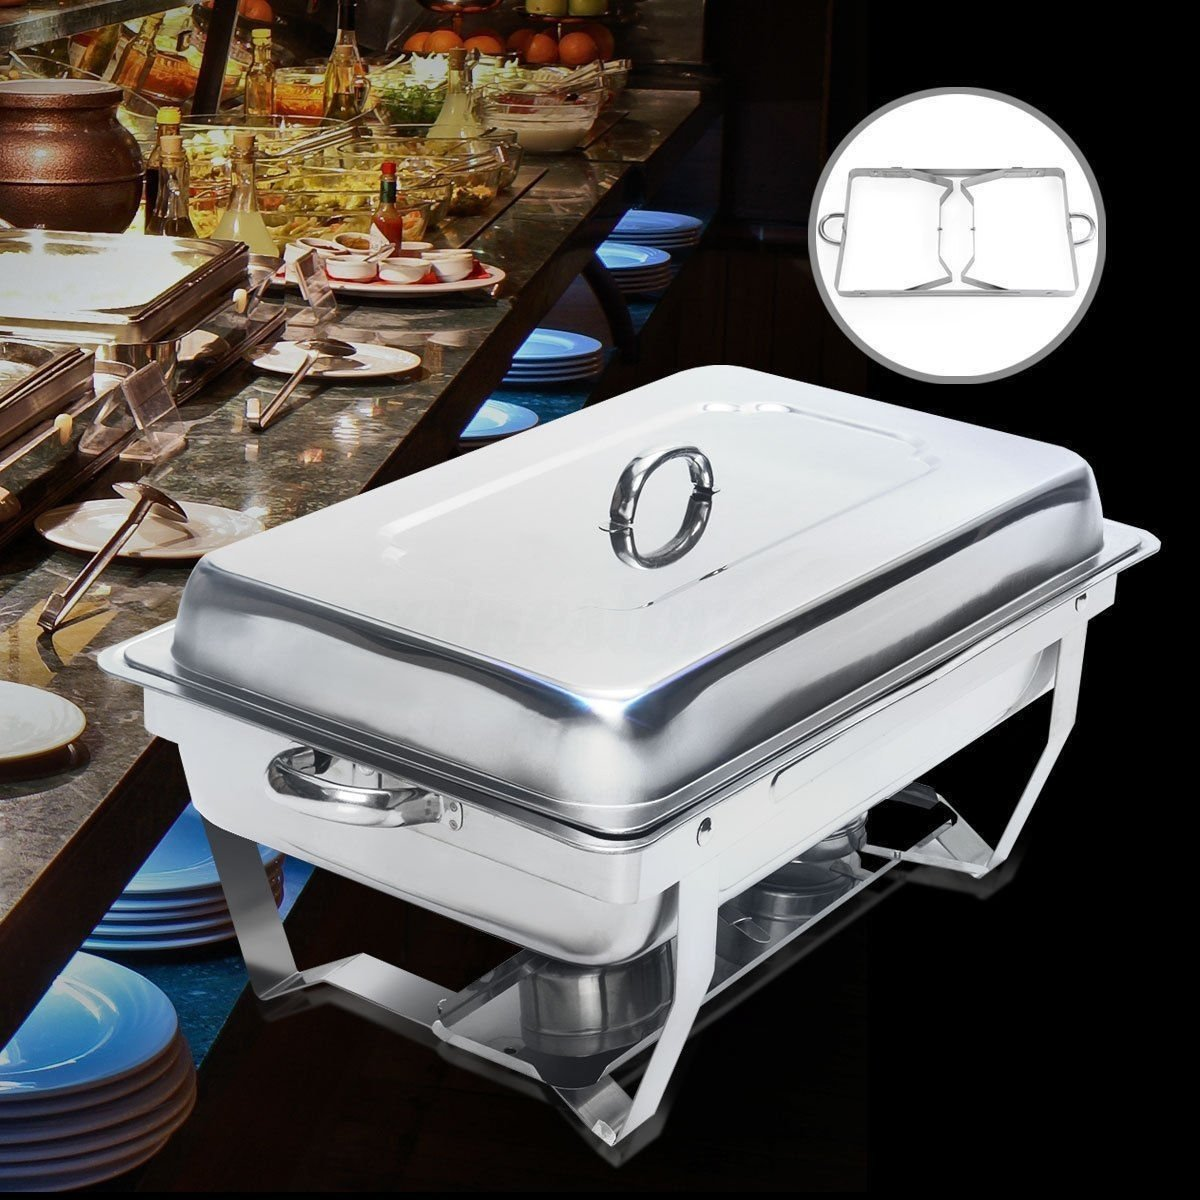 Chafing Dish Set 9 Liter Polished Stainless Steel for Catering BUFFETS Parties 8888